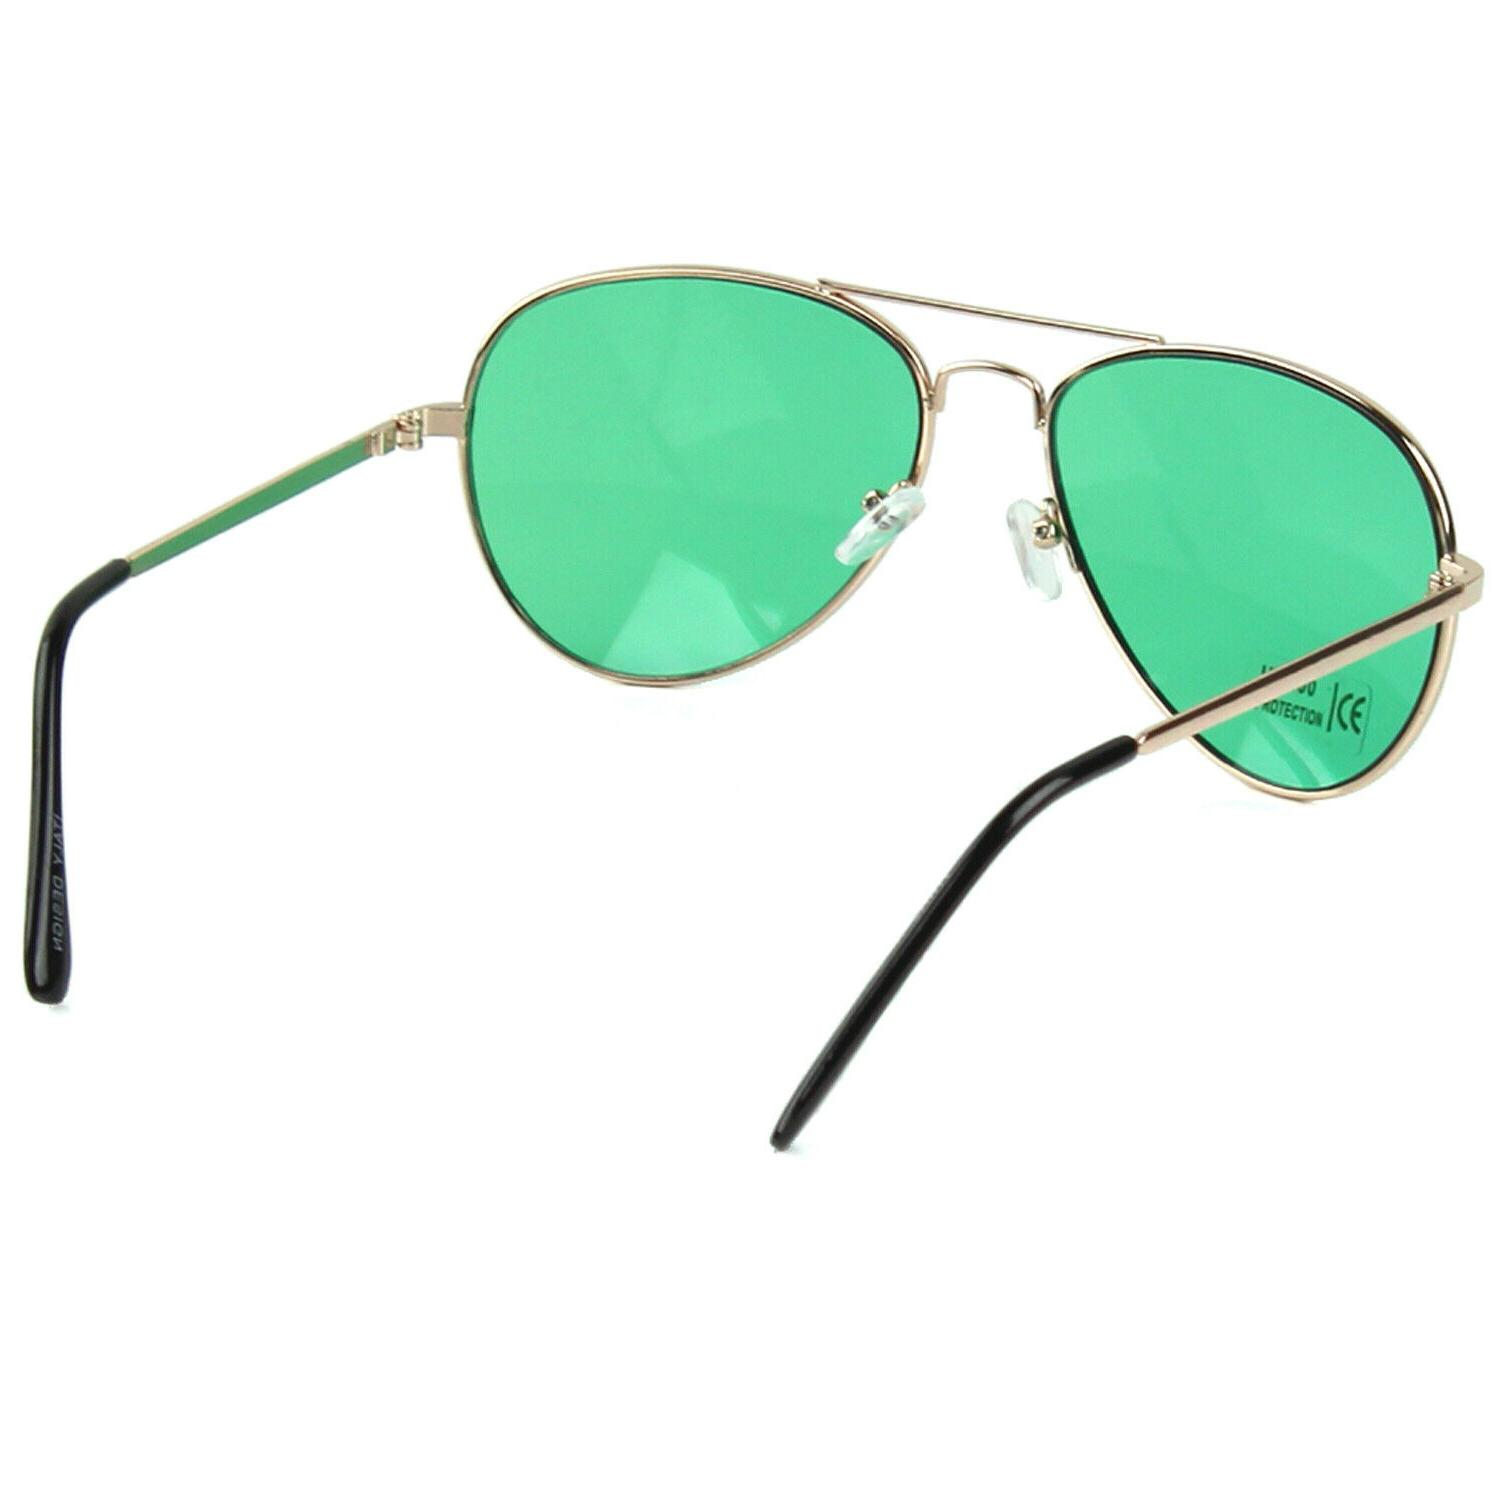 New Mens Sunglasses Metal Frame Gold Green Retro Pilot